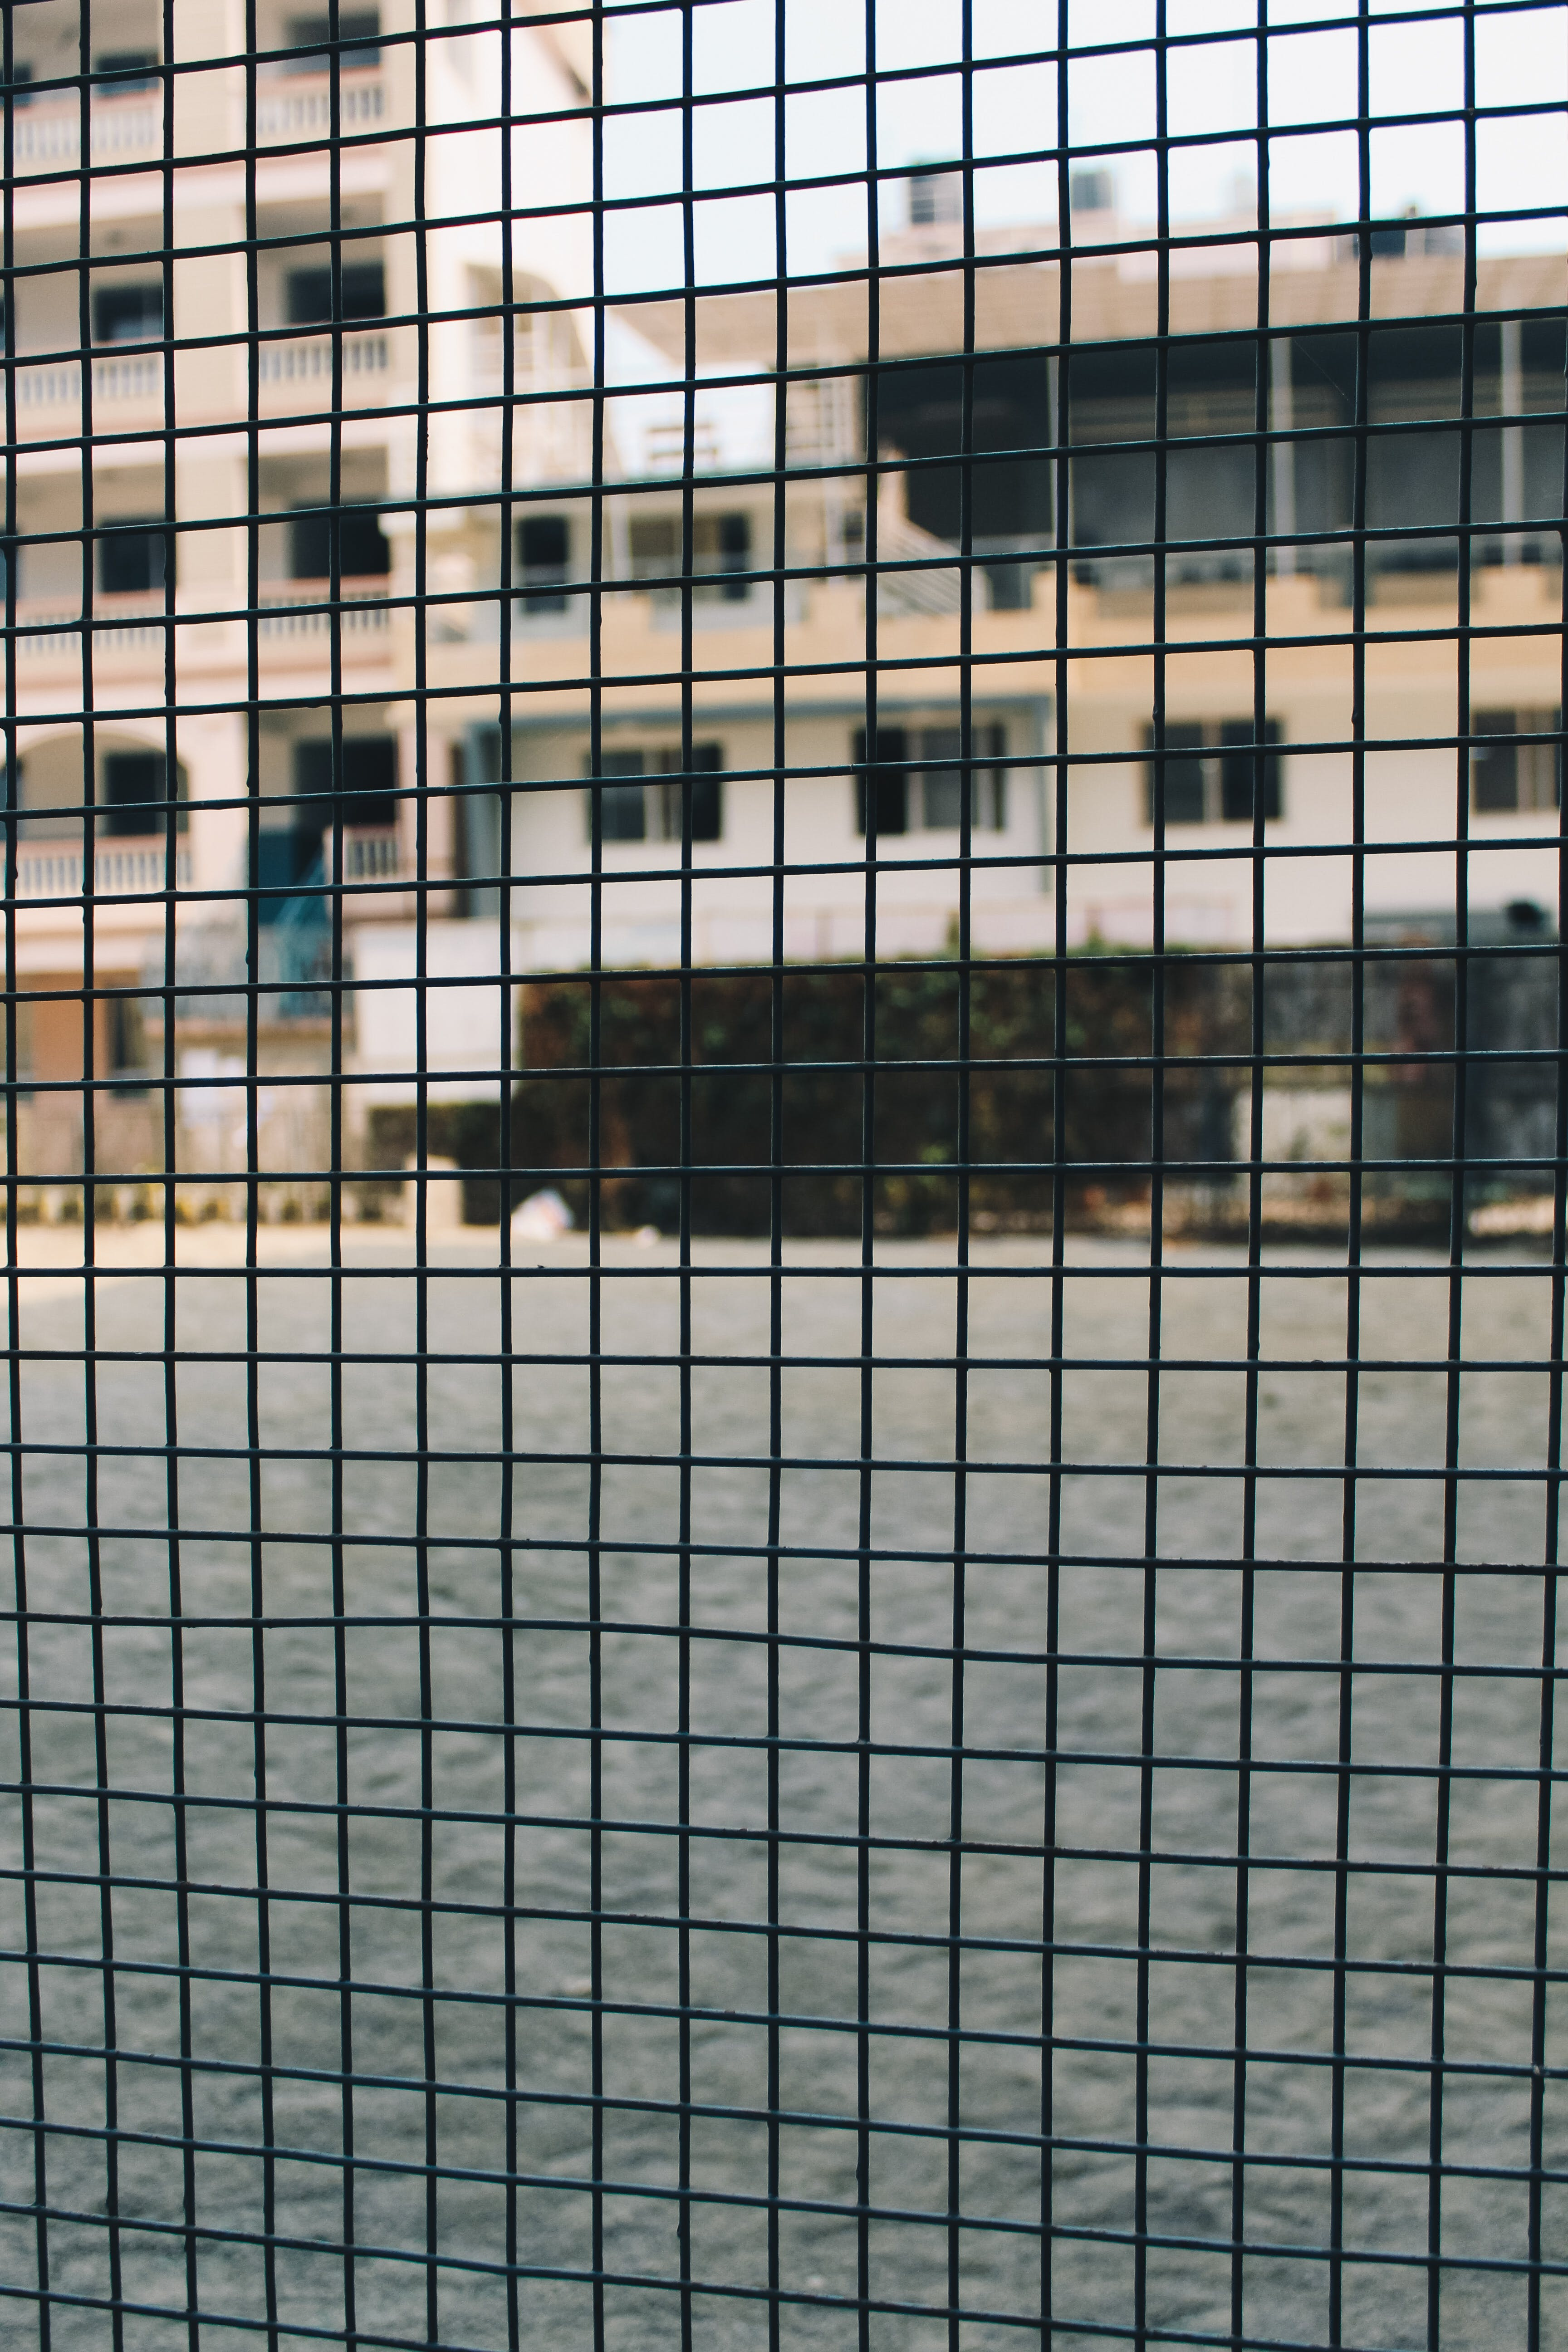 Free stock photo of #outdoorchallenge, barred, building, depth of field